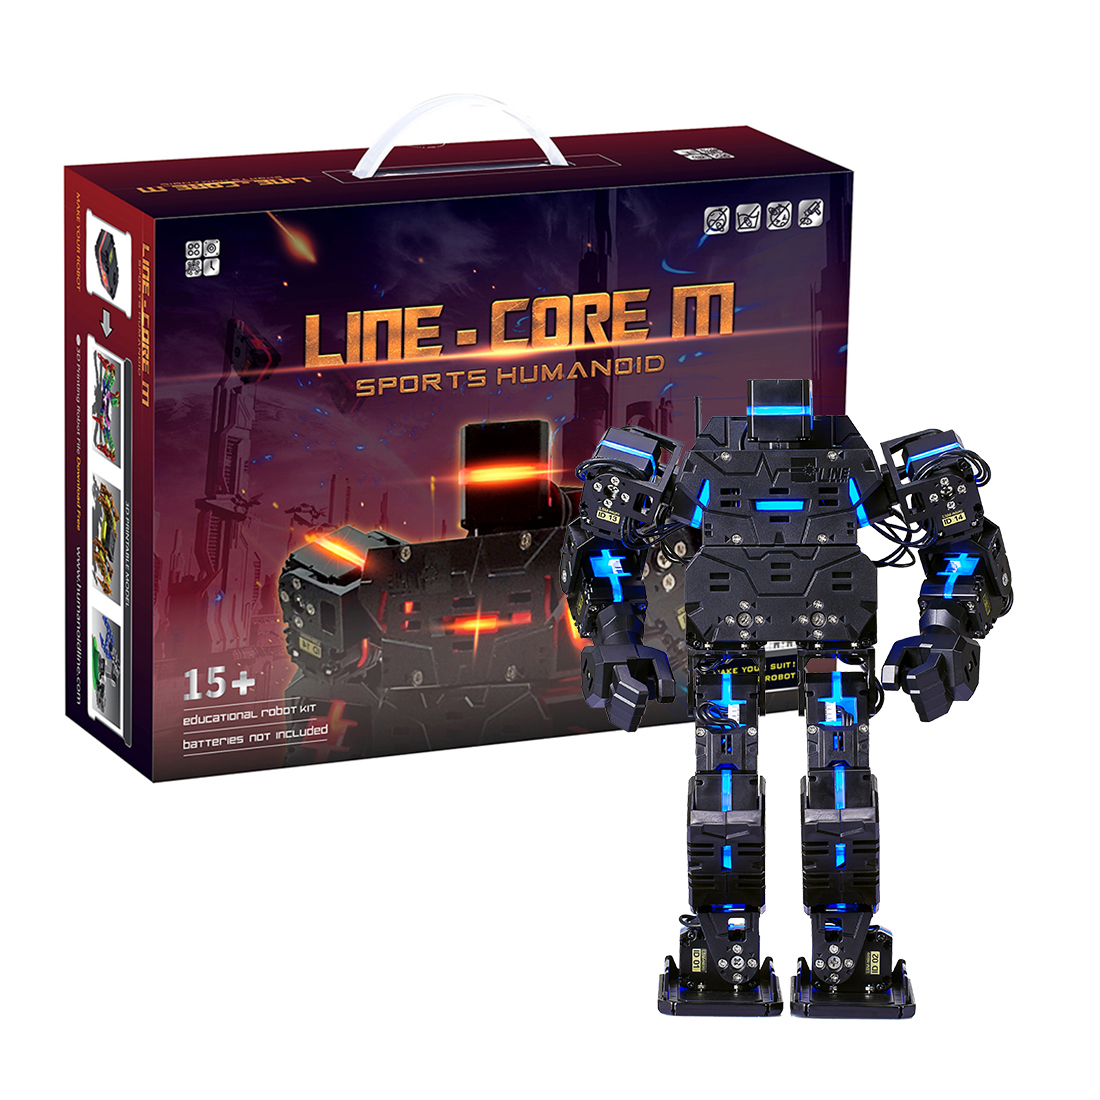 27cm My Robot Time LINE-Core M Graphical DIY Programmable Humanoid Robot Educational Robot Kit - Black/Red/Blue/White 1